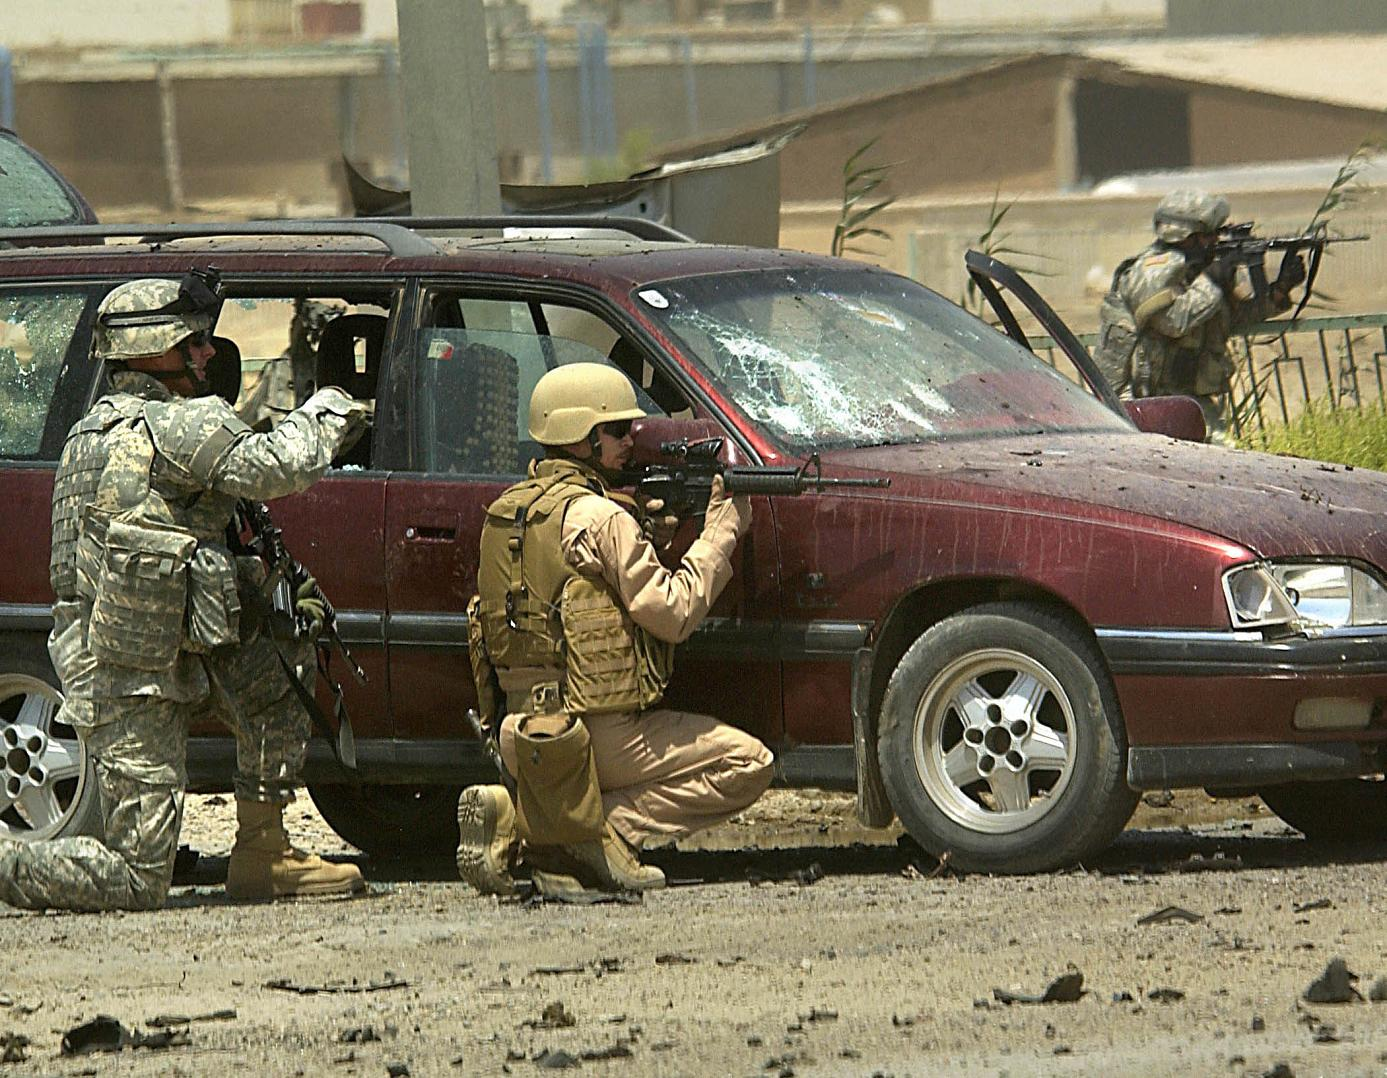 US troops take cover from small arms fire while investigating a car bomb explosion in Tameem, Ramadi, August 10, 2006